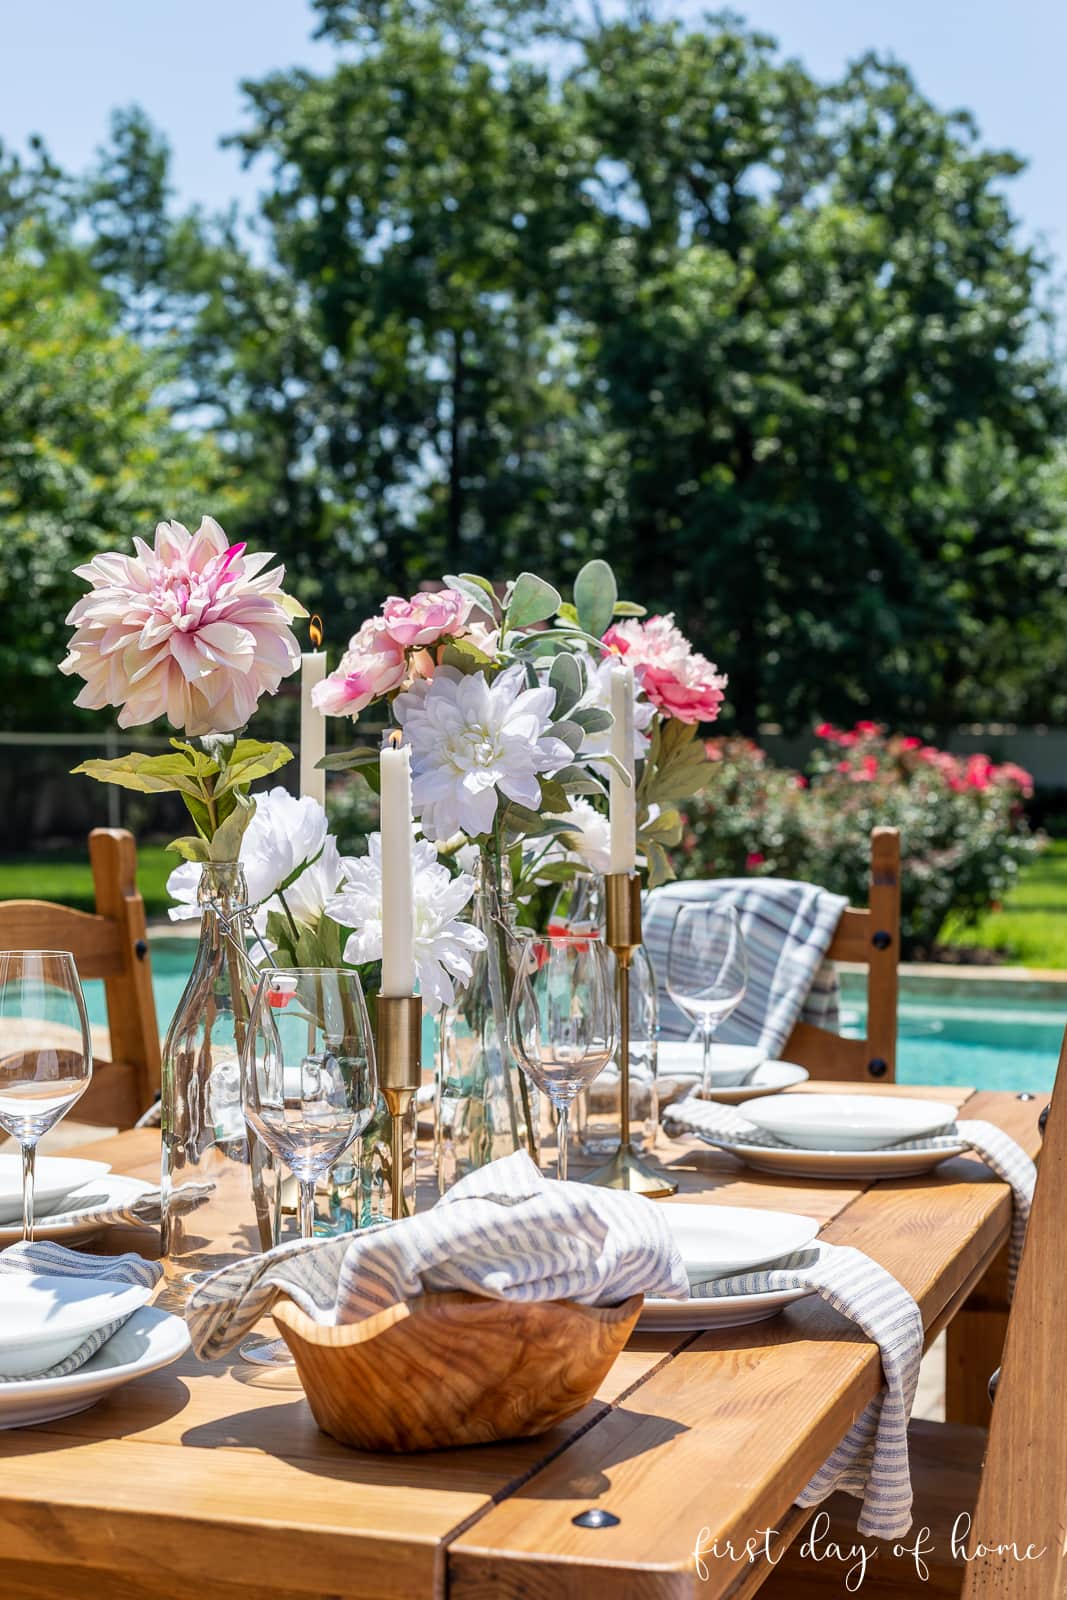 Outdoor dining table decorations with faux floral centerpiece, glass bottles and table linens